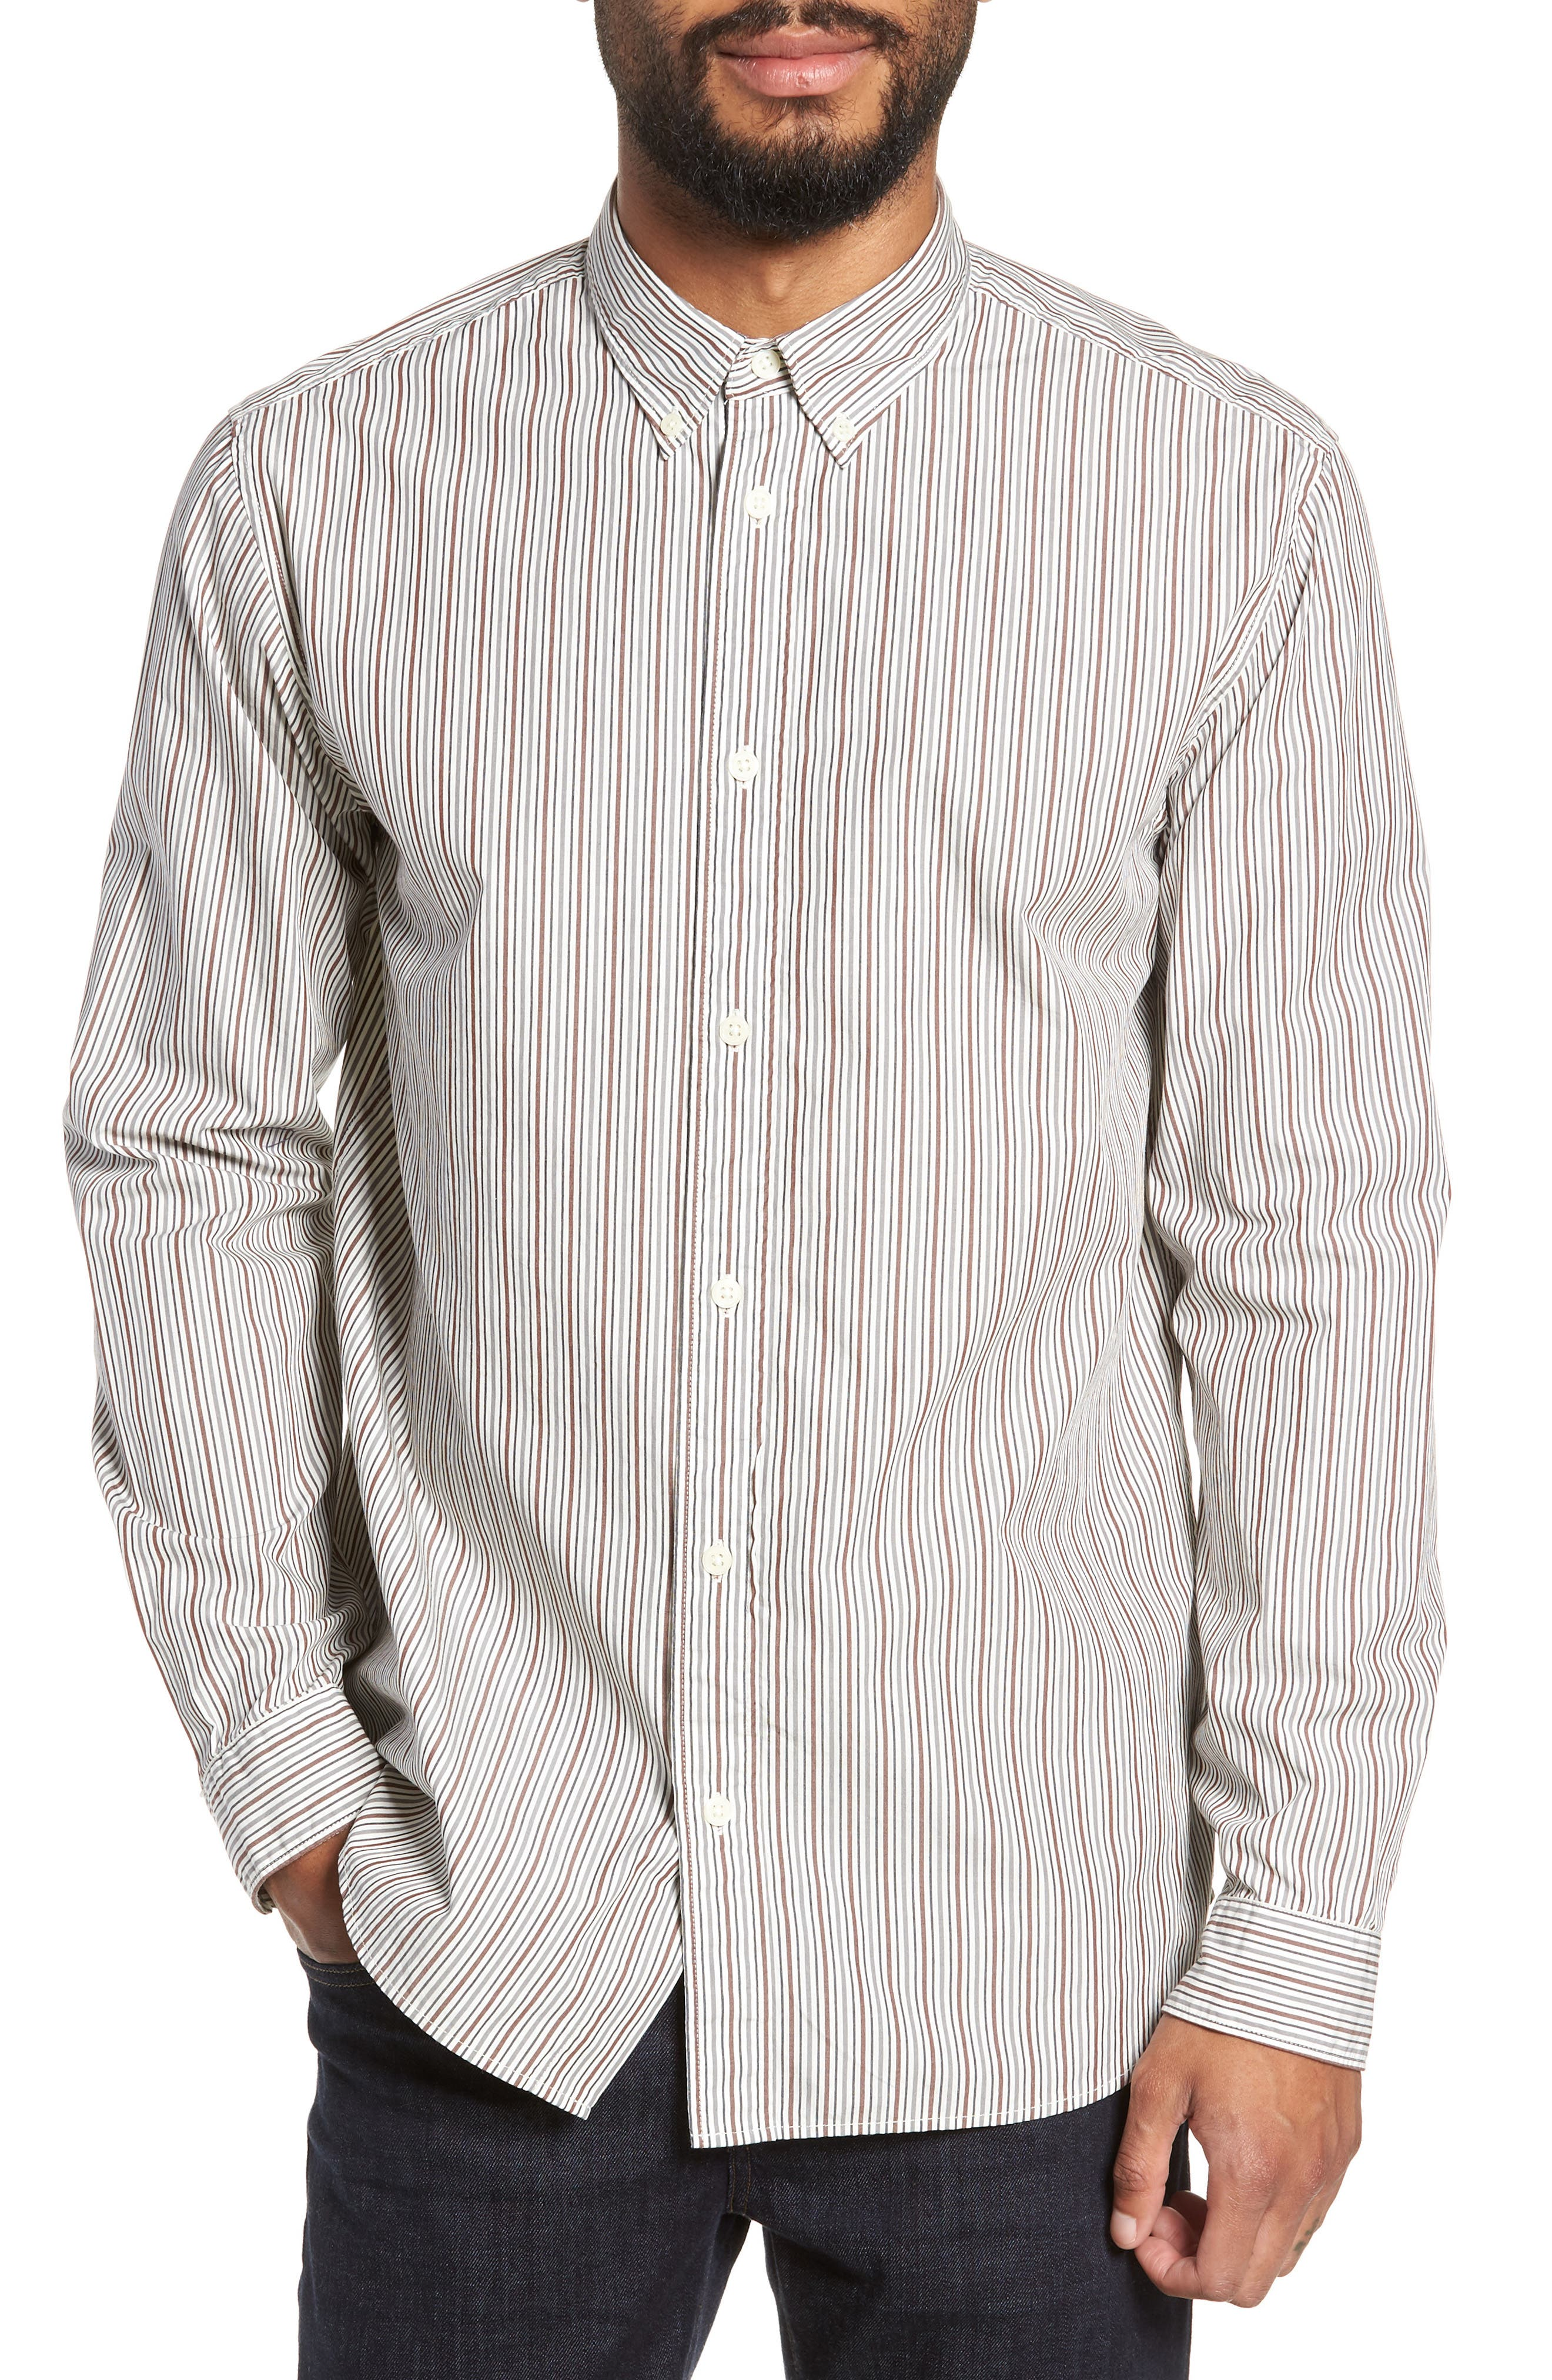 Carlo Regular Fit Stripe Sport Shirt,                         Main,                         color, QUIET SHADE STRIPES